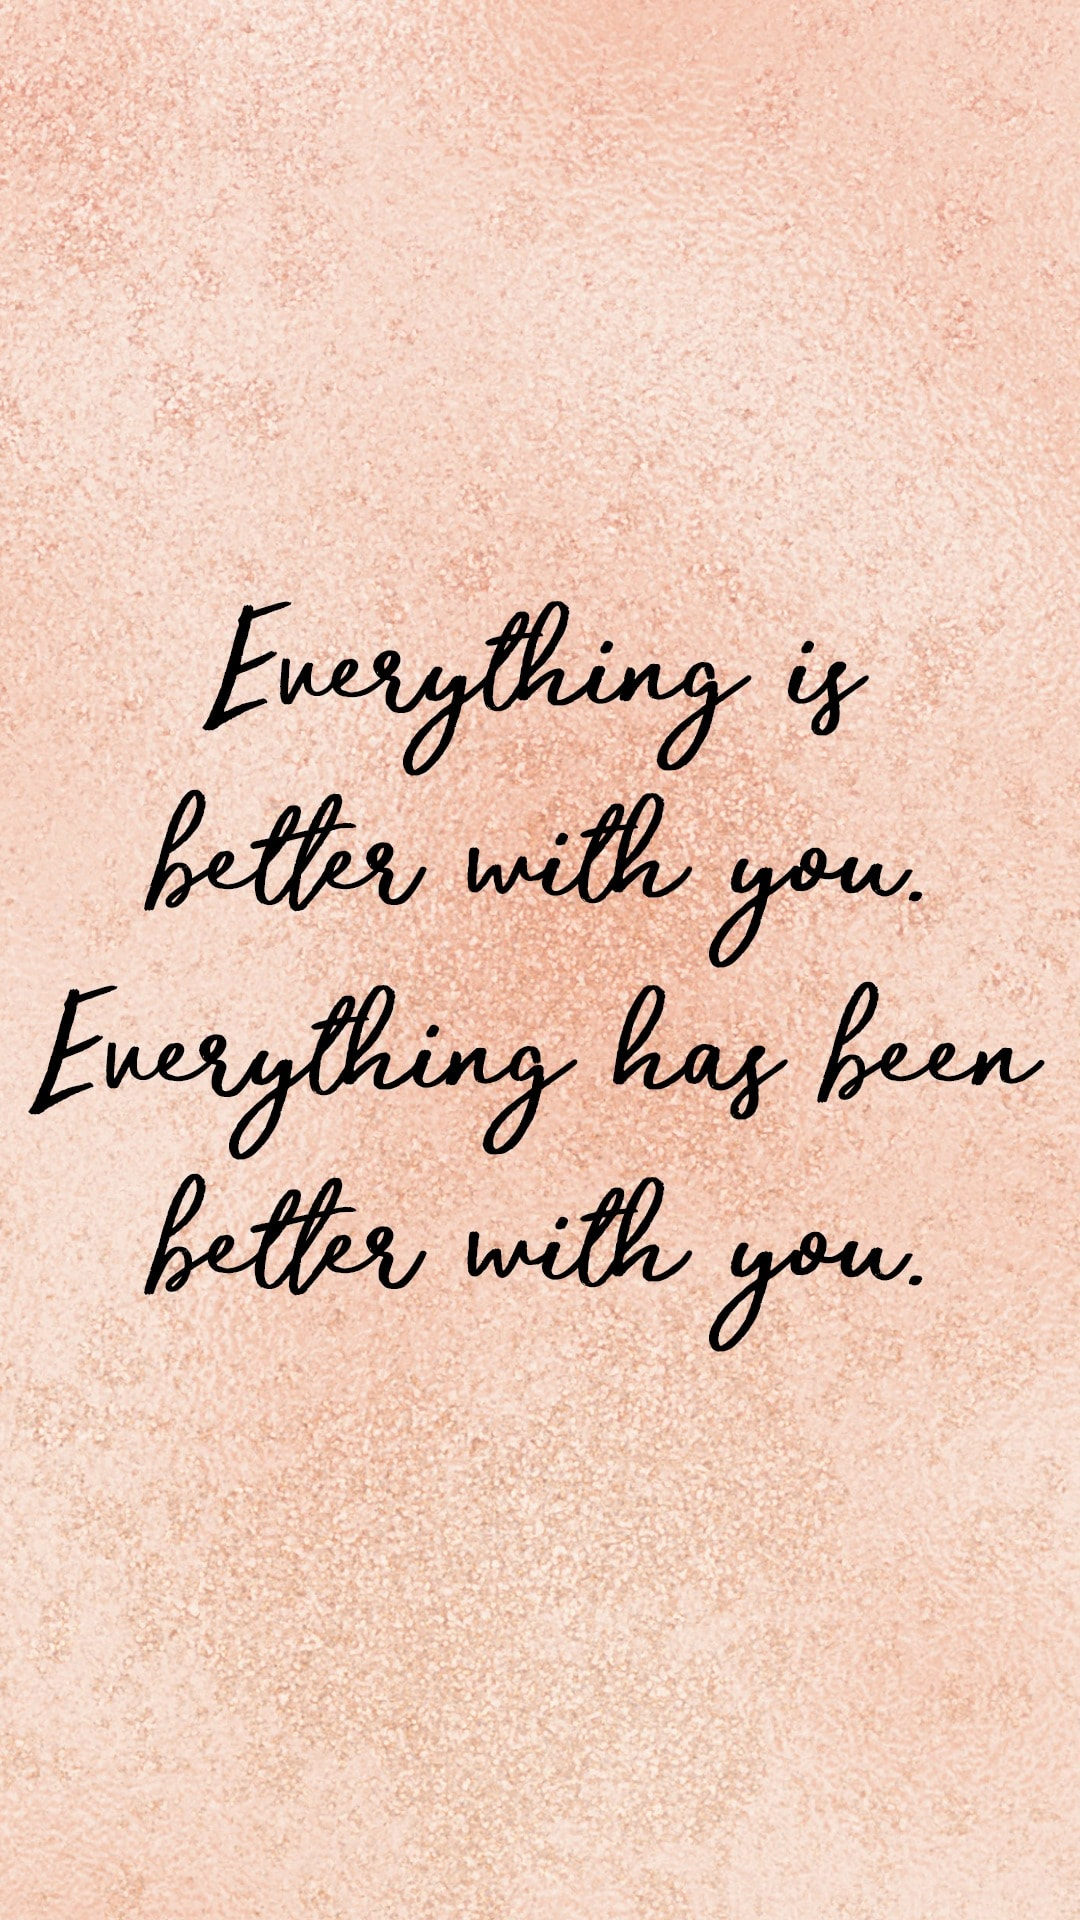 Everything is better with you. Everything has been better with you.